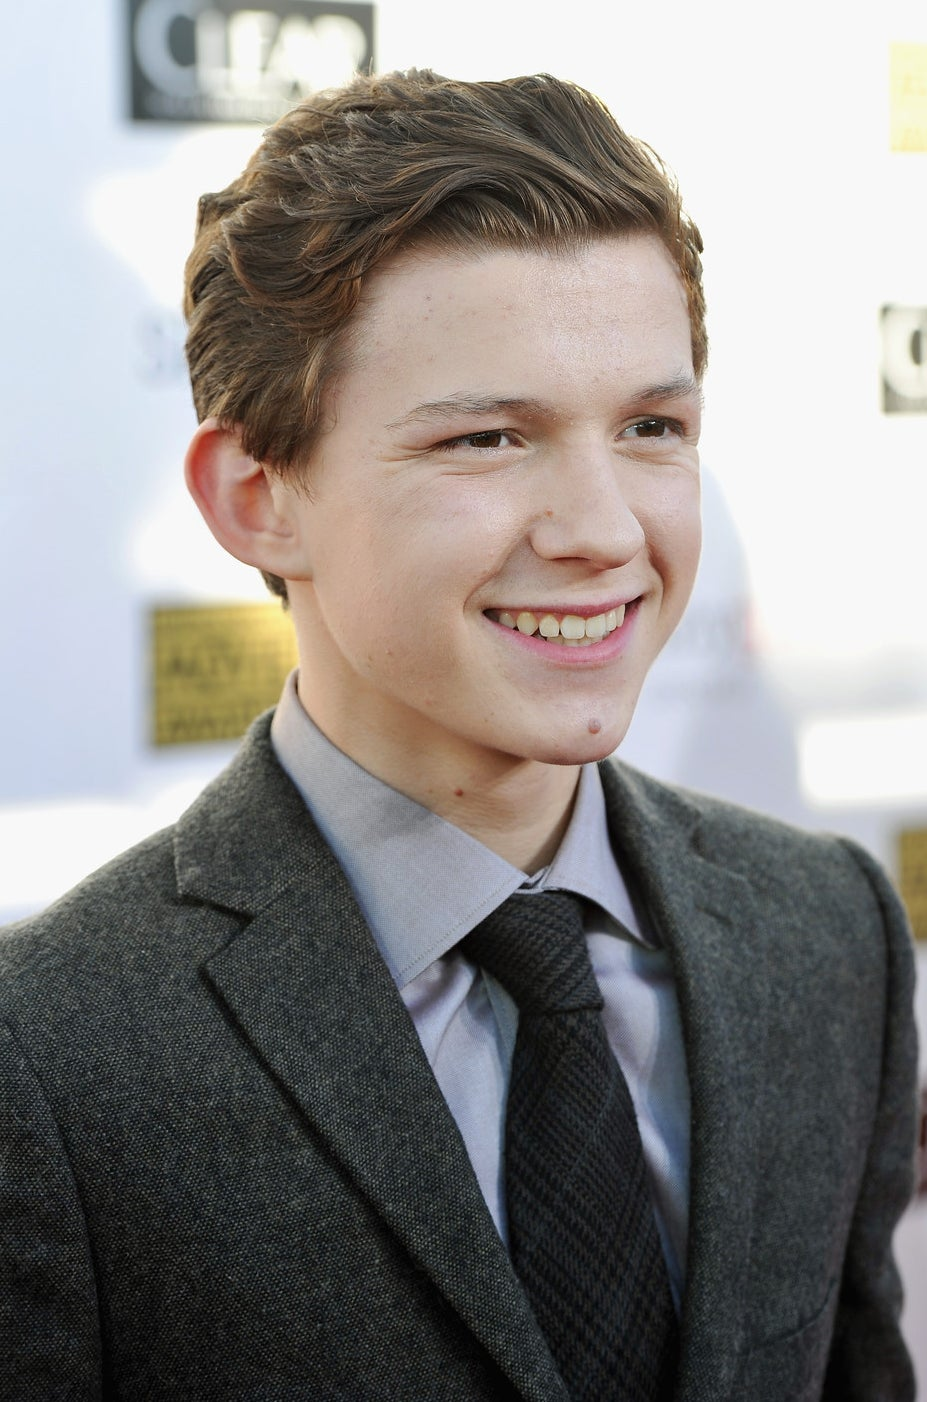 The New Spider-Man Will Be British Actor Tom Holland